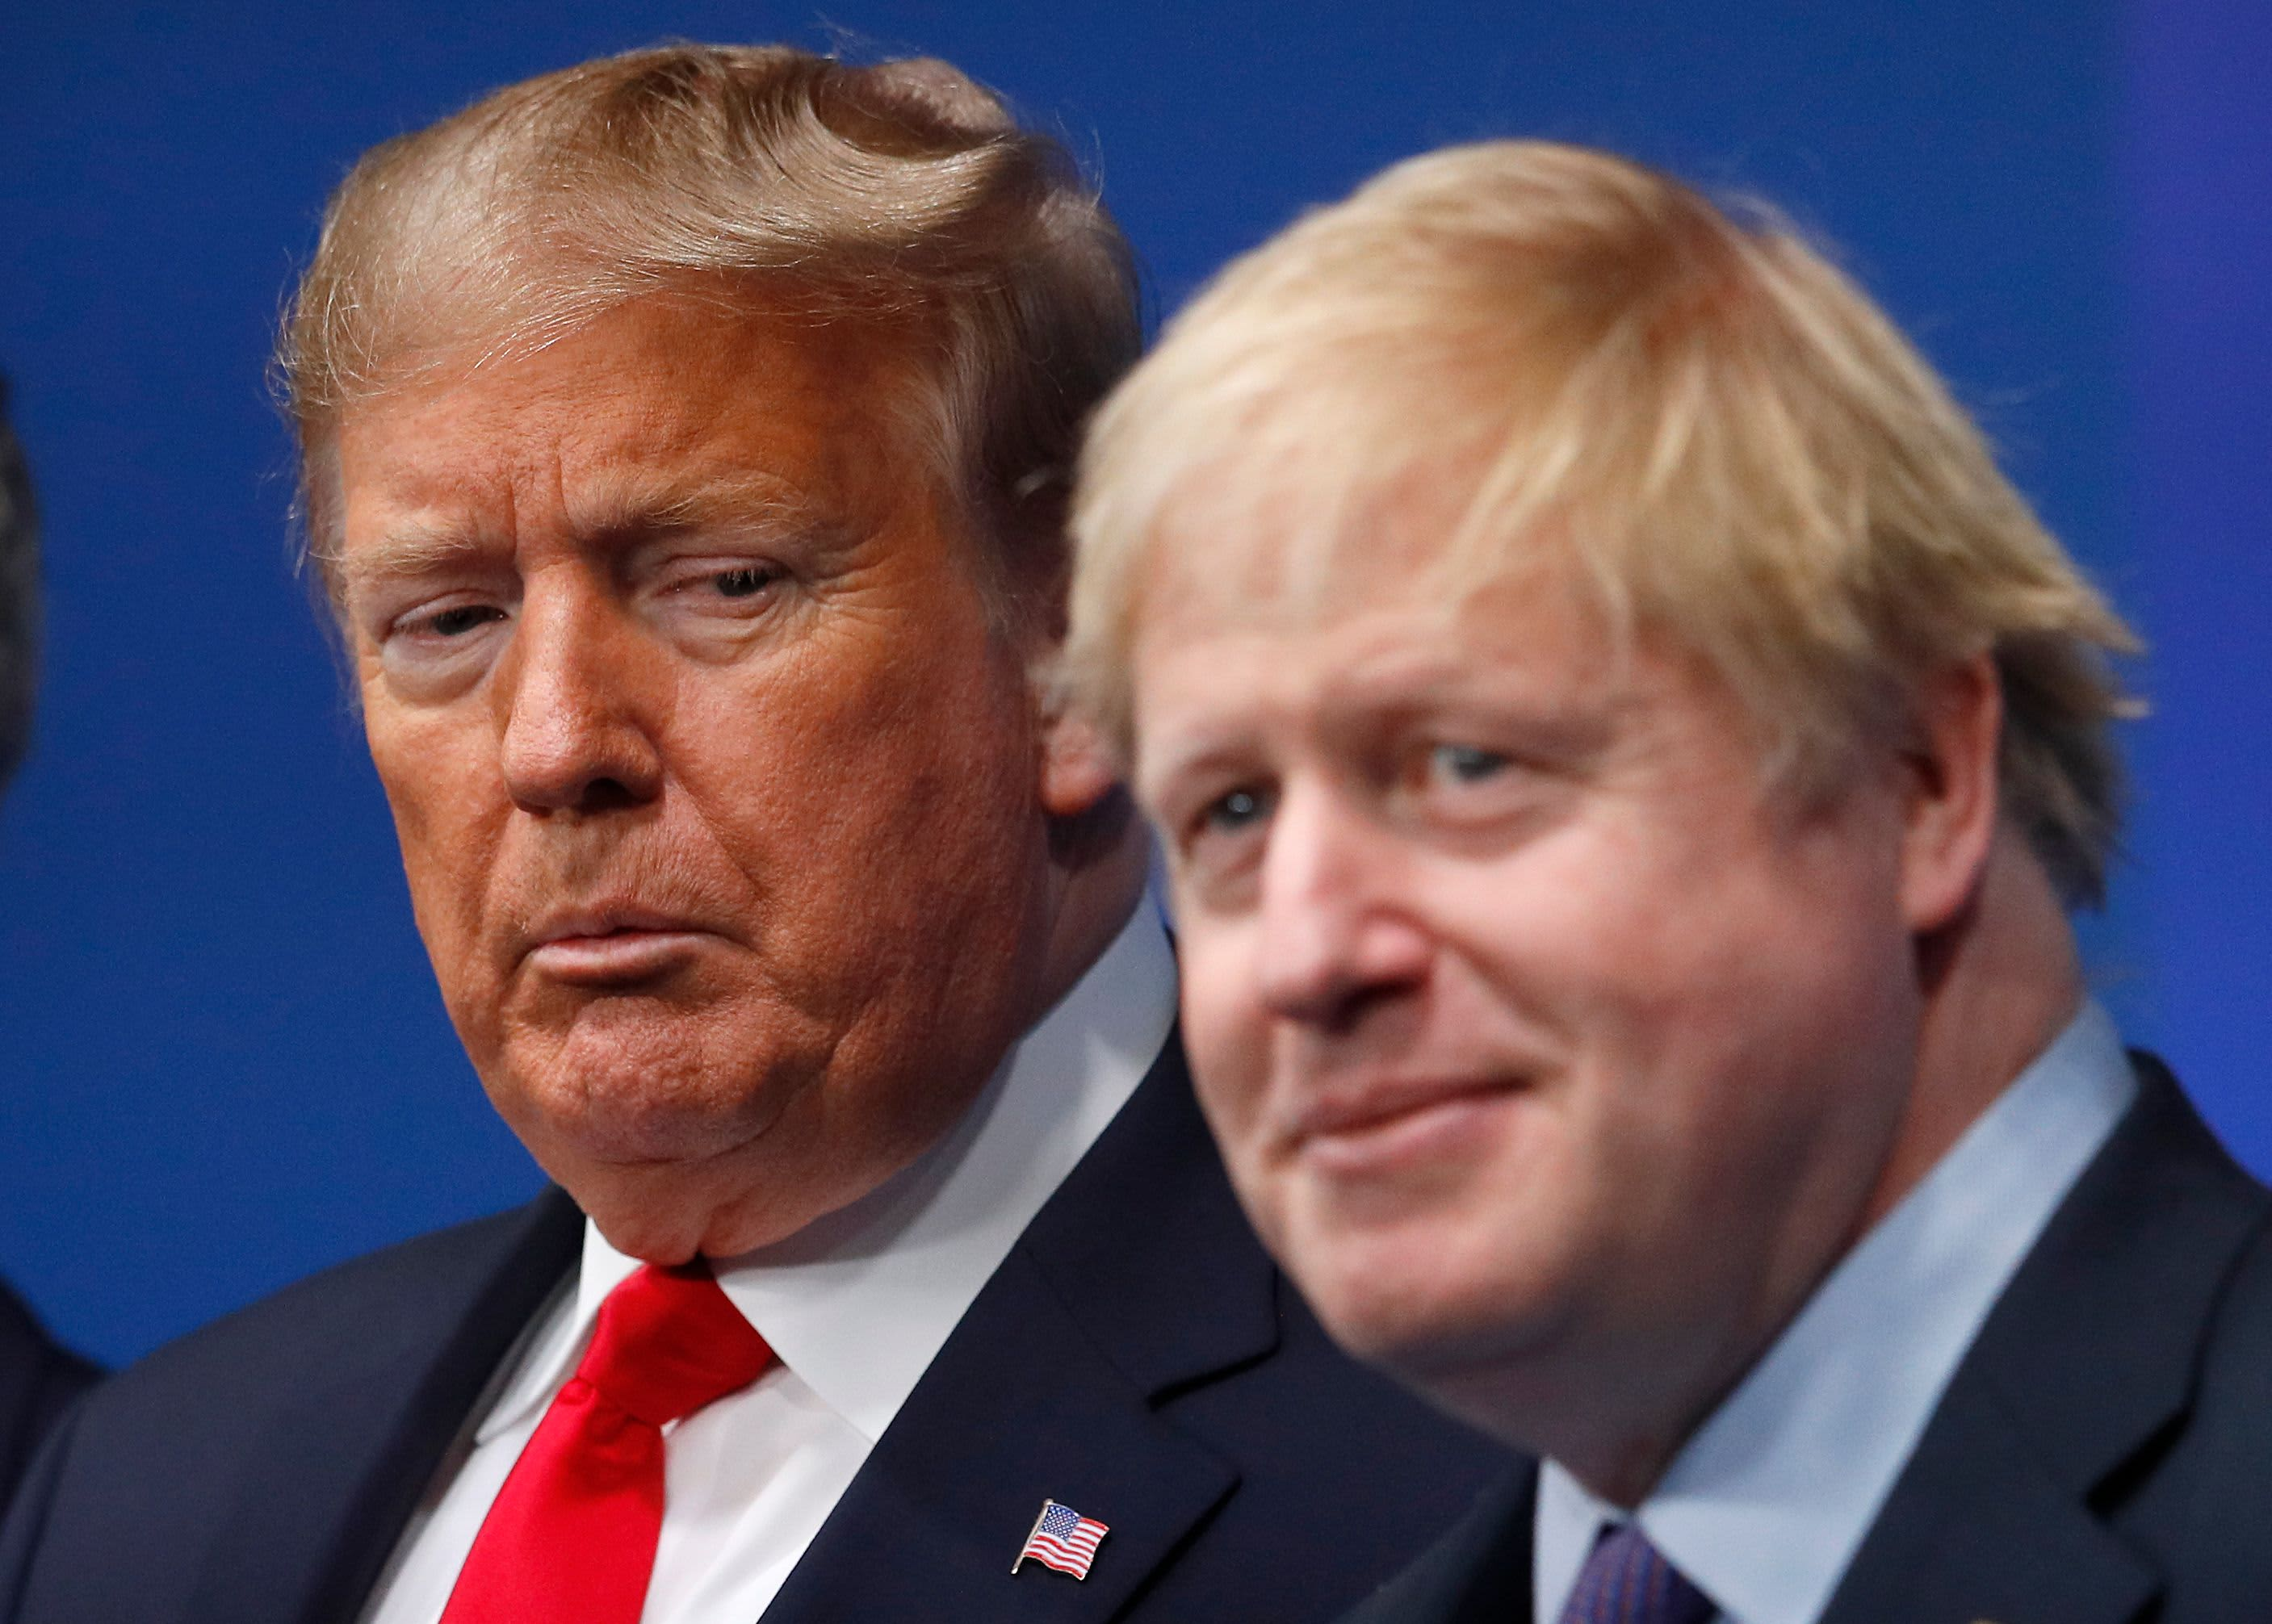 Trump 'apoplectic' with UK over Huawei 5G decision as US suggests taking stake in Nokia, Ericsson